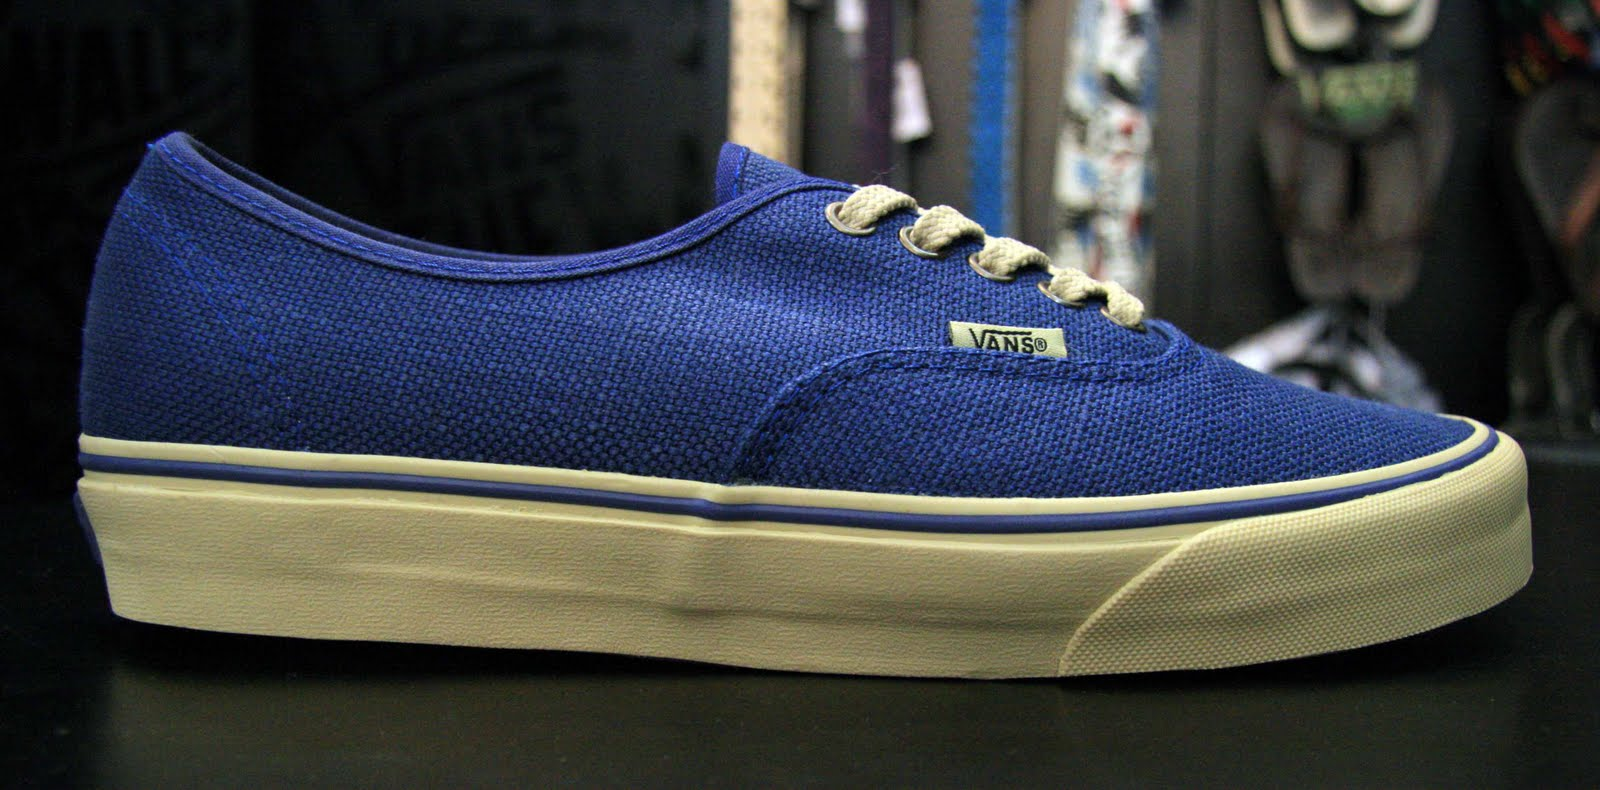 79b31d695d Itchy Labels  New Sneaker drop at Vans Coventry